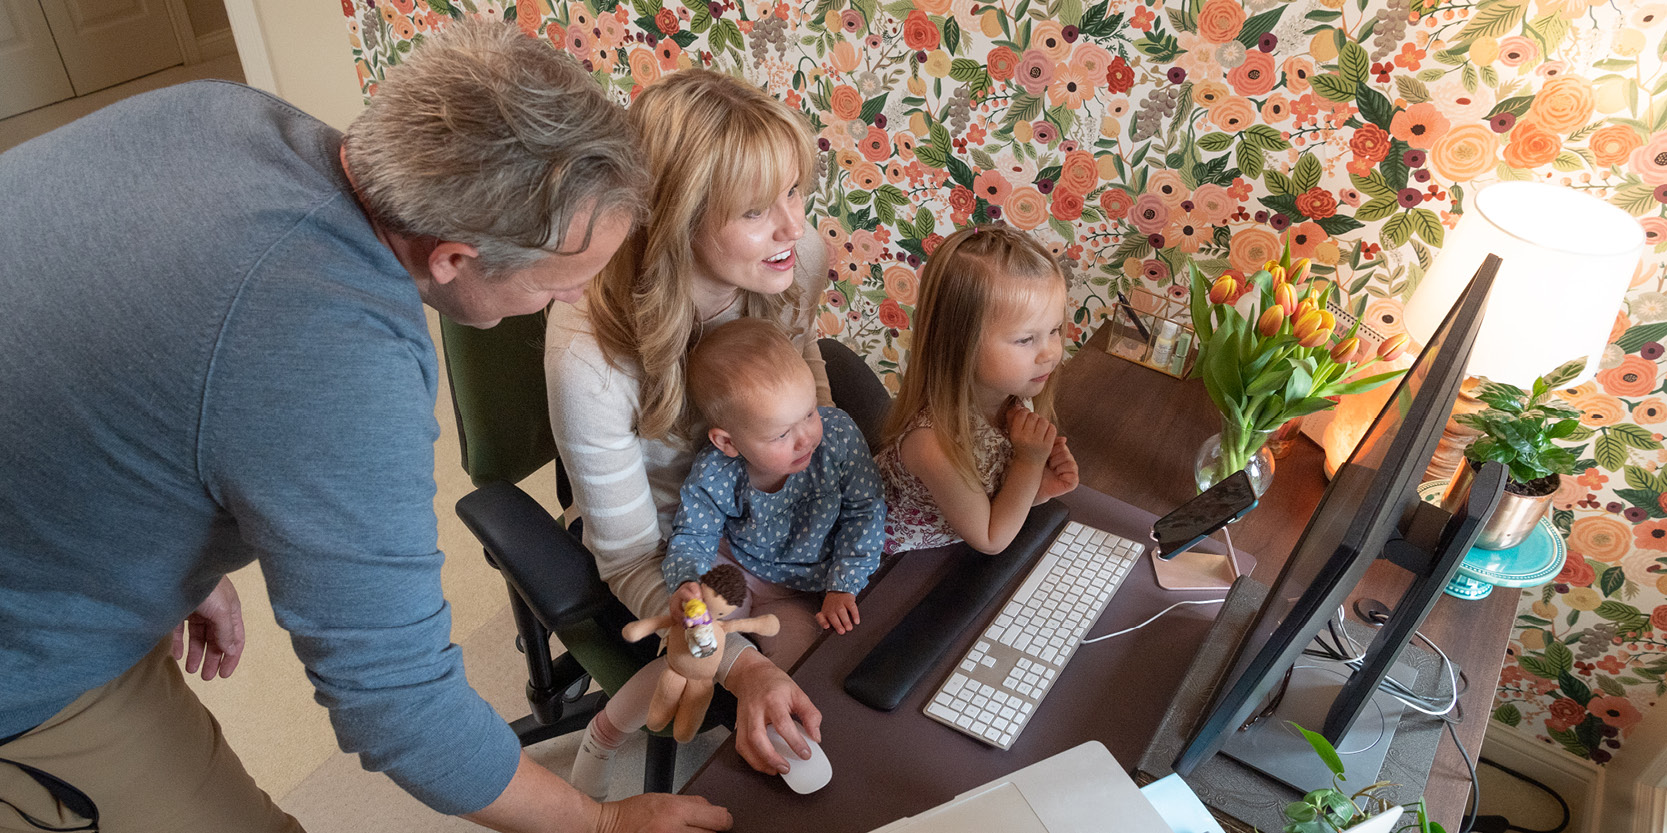 Purdue employees Johnna and Josh Dexter-Wiens have worked remotely during the COVID-19 pandemic while also caring for their young daughters, Luca and Remy.